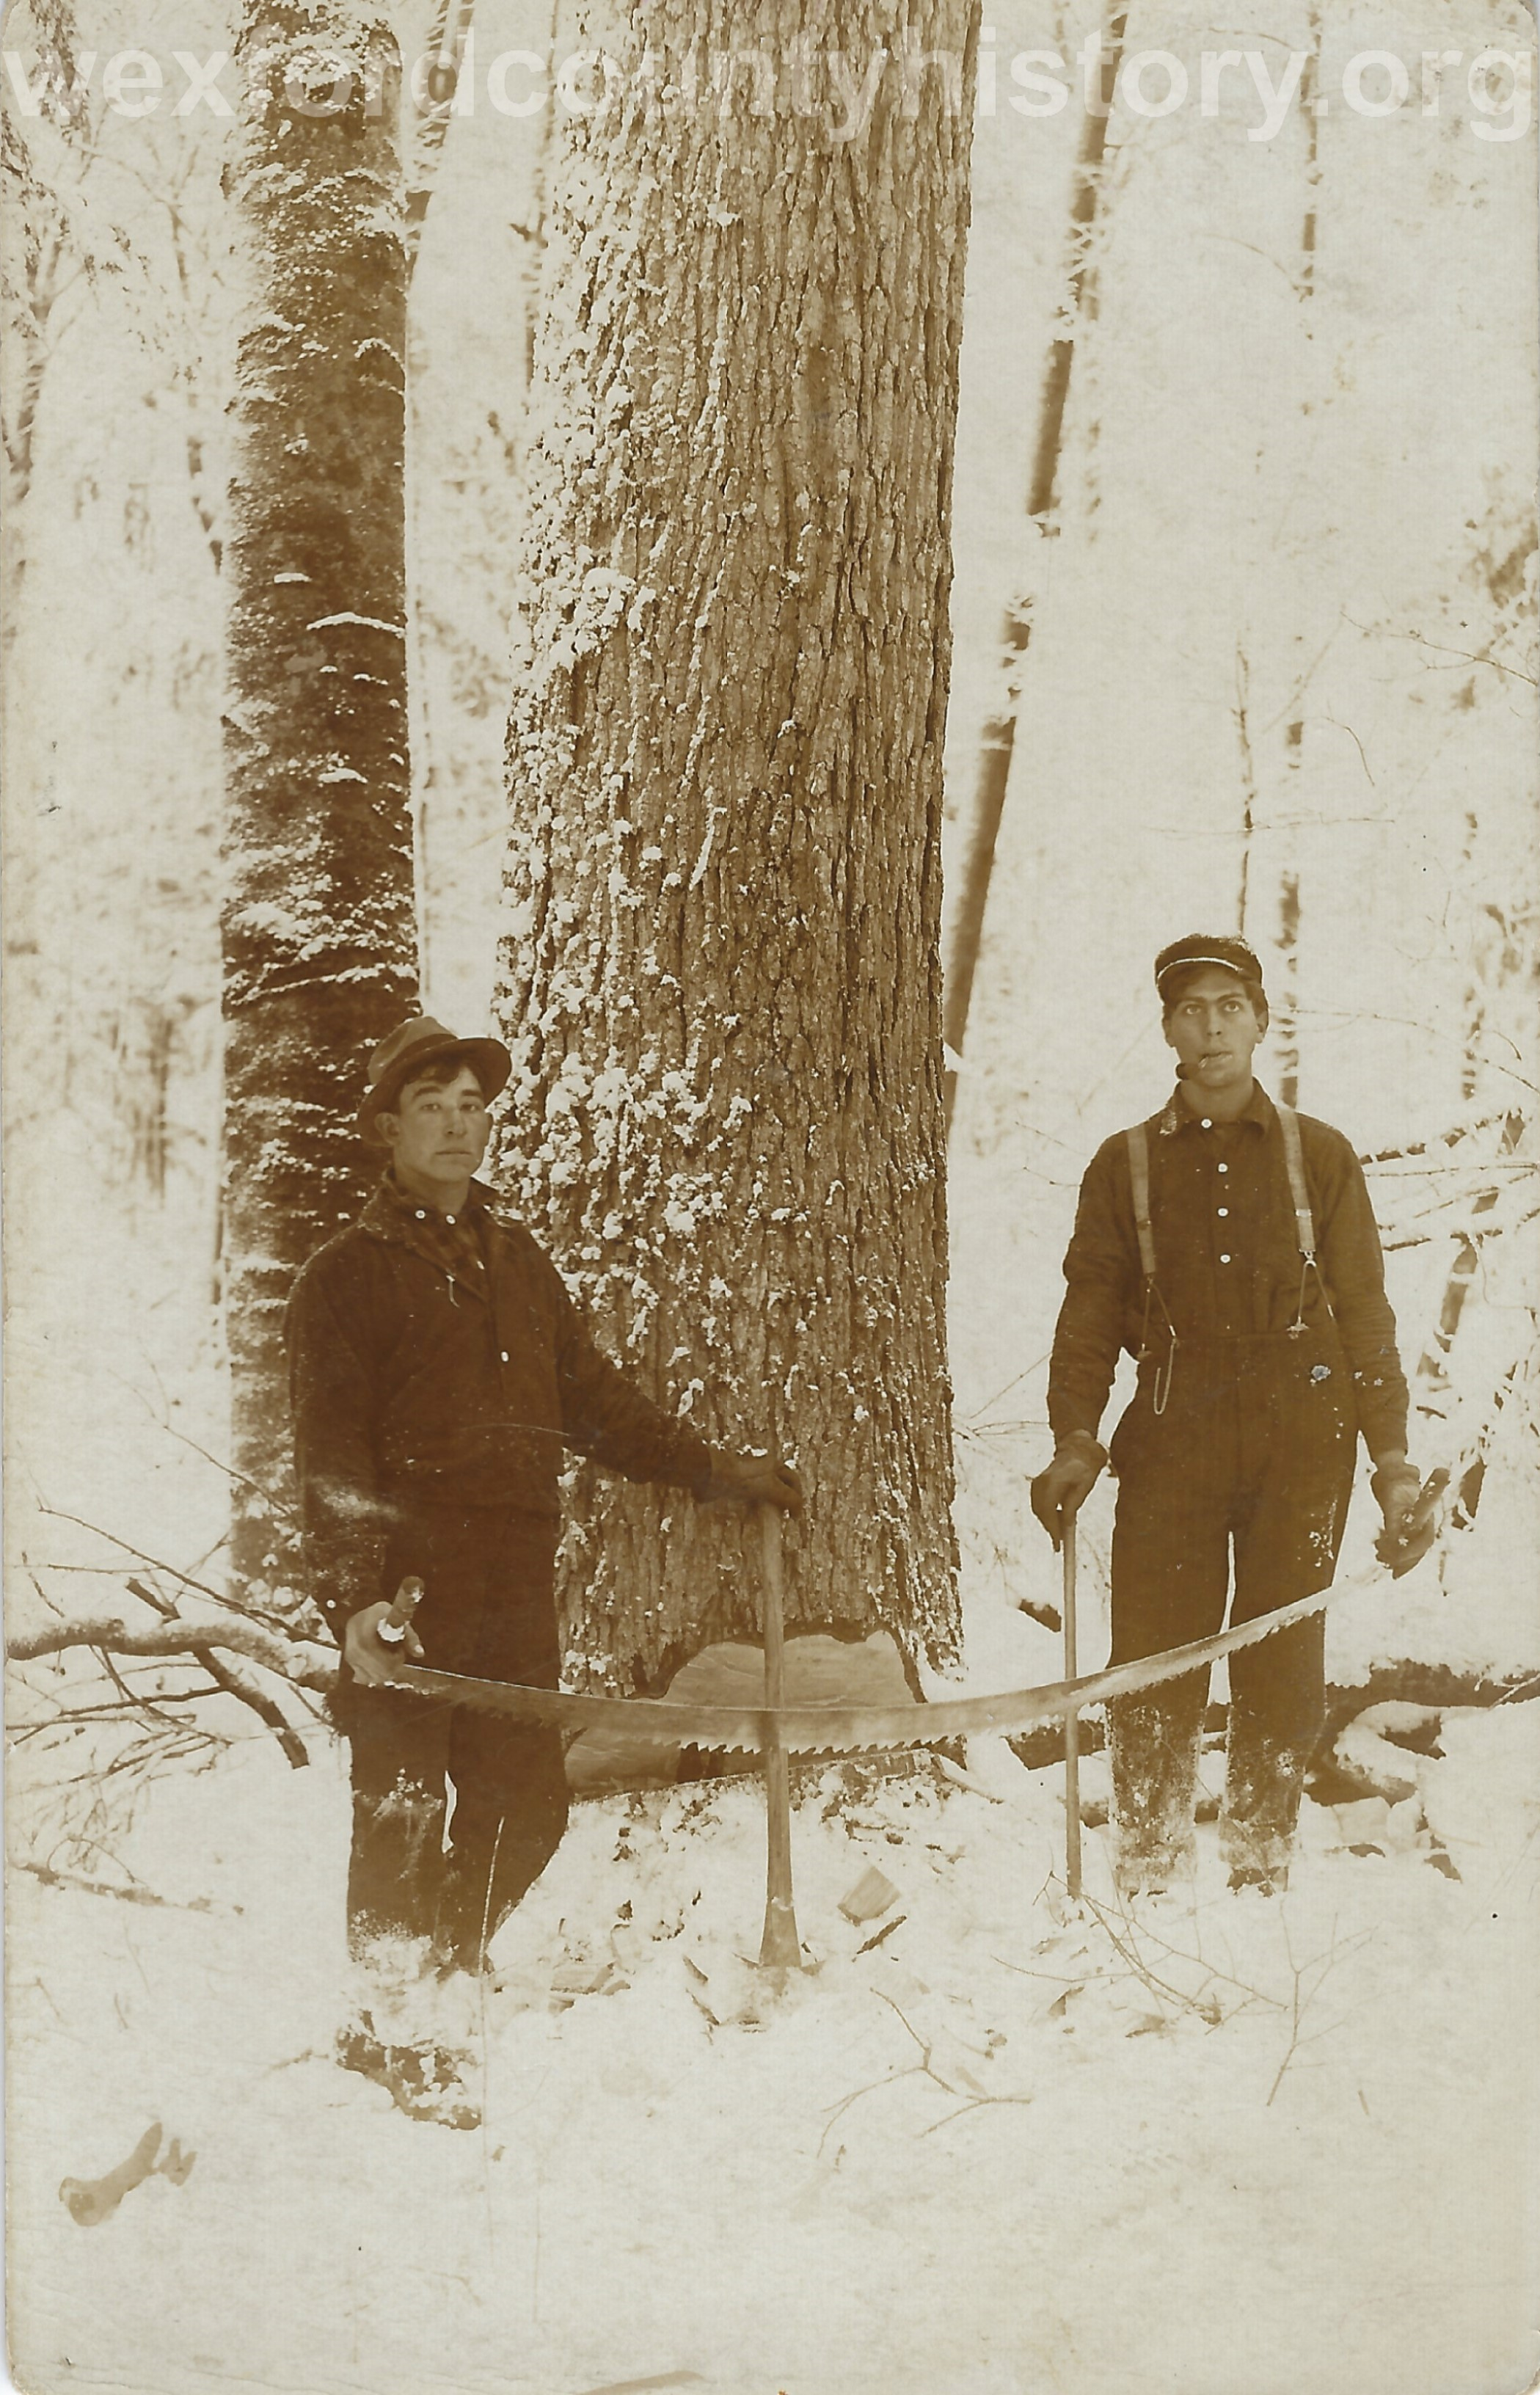 Cadillac-Lumber-Two-Men-With-Crosscut-Saw